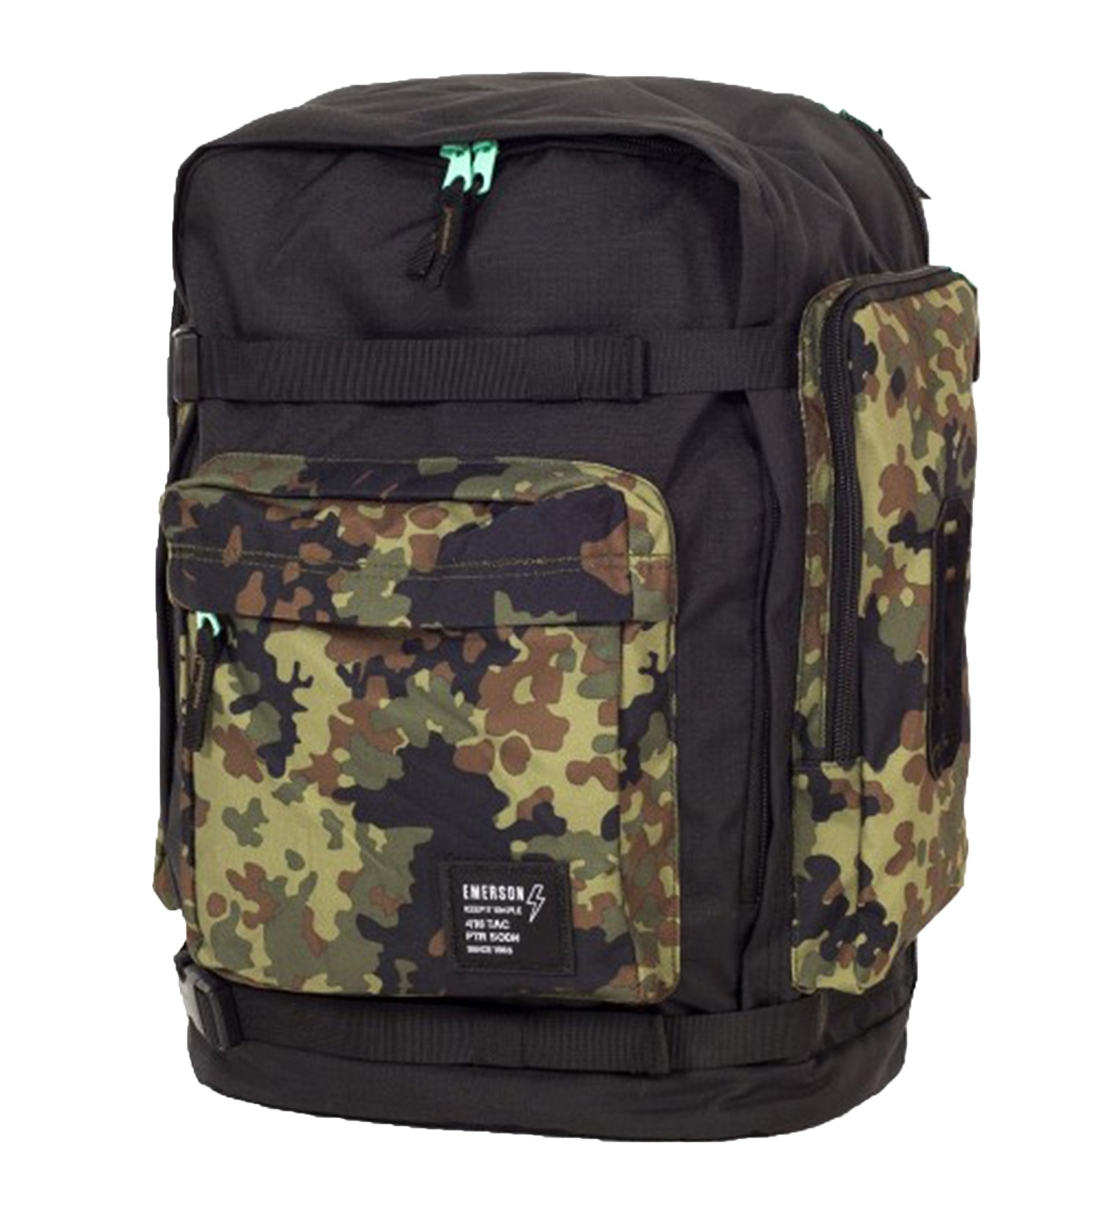 Emerson Σακίδιο Πλάτης Backpack BE0002